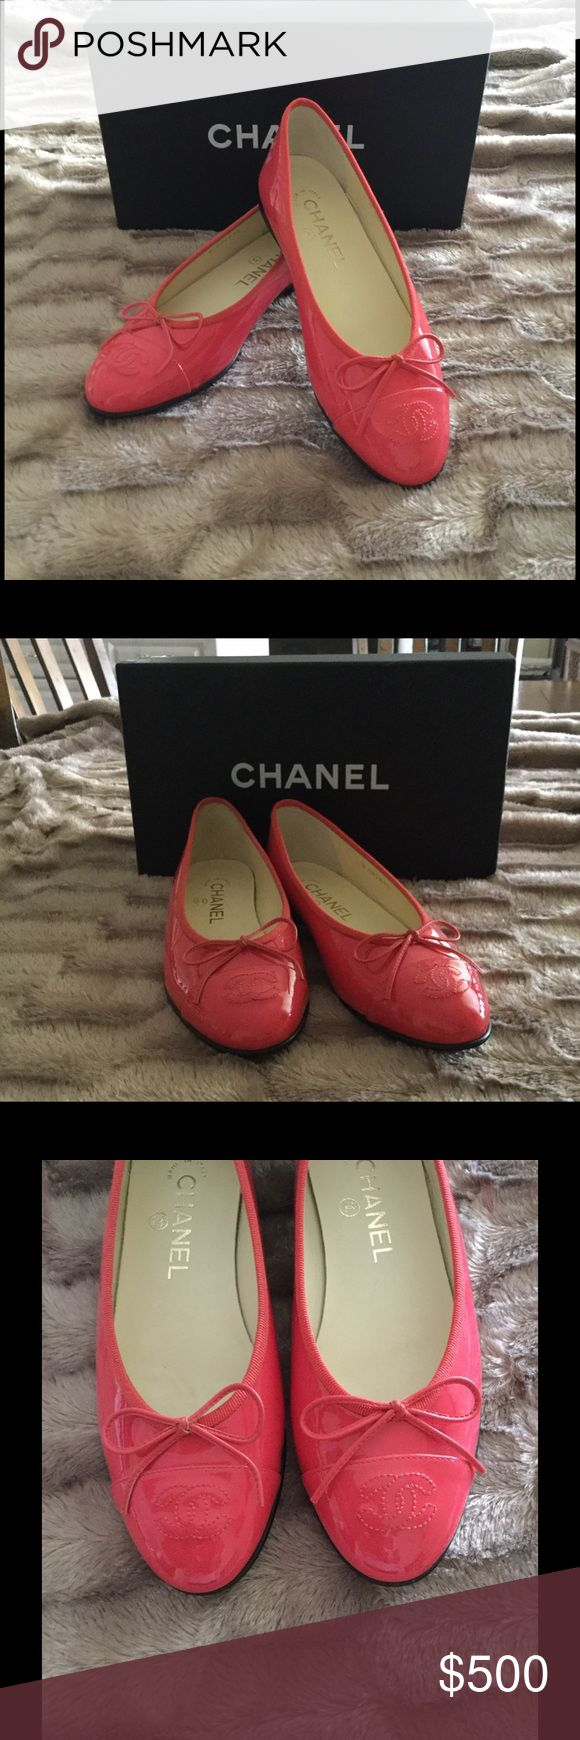 NEW Chanel flats Chanel coral flats New, never worn. Patent calfskin leather. CHANEL Shoes Flats & Loafers